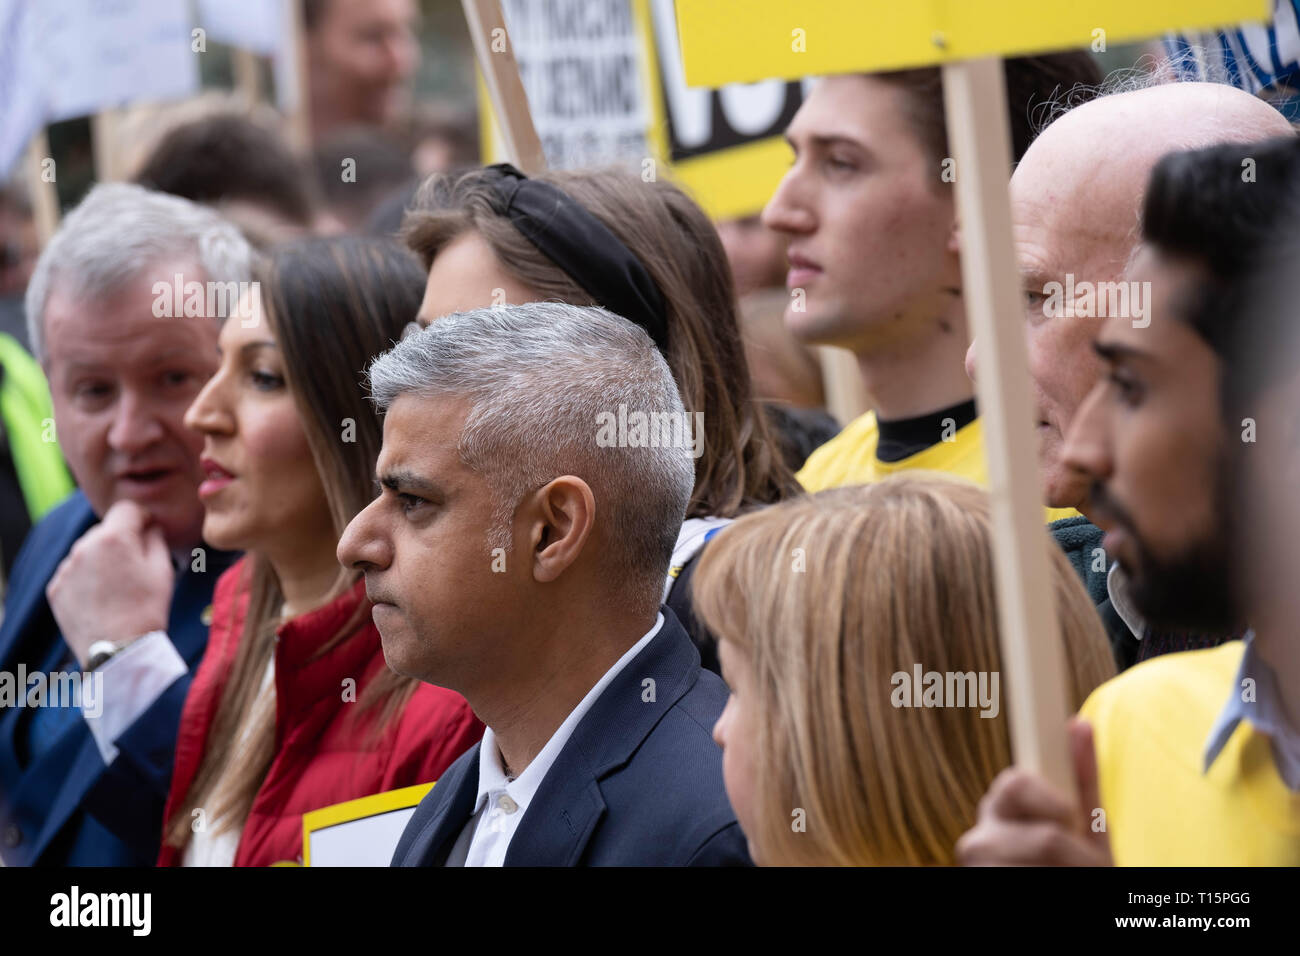 London, UK. 23rd Mar, 2019. Sadiq Khan and Rosena Allin-Khan waiting at the start of the Peoples Vote march. London 23 March 2019 Credit: Chris Moos/Alamy Live News - Stock Image